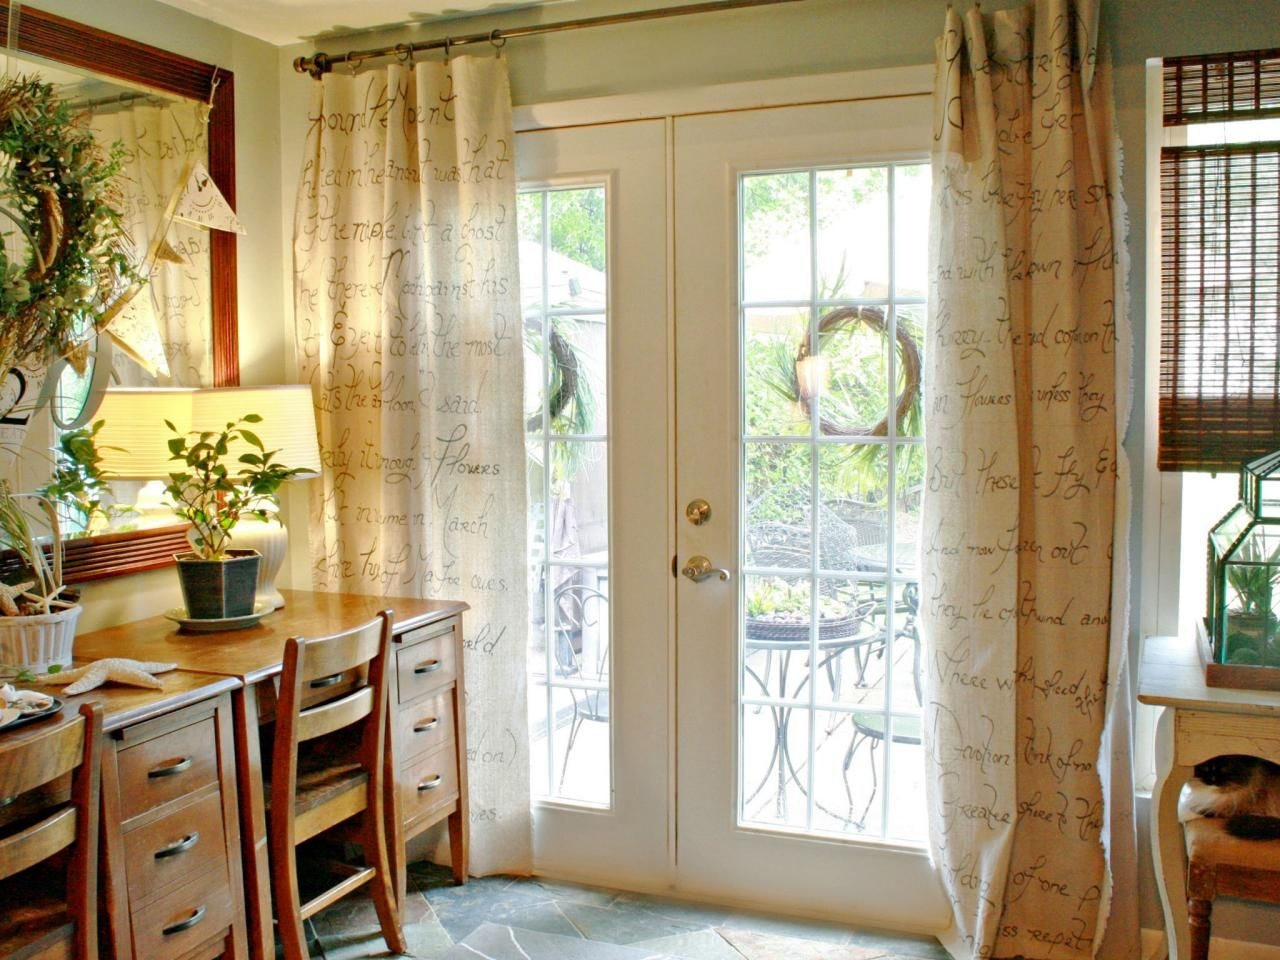 Window Treatment Ideas | Window coverings, Curtains and Window ...